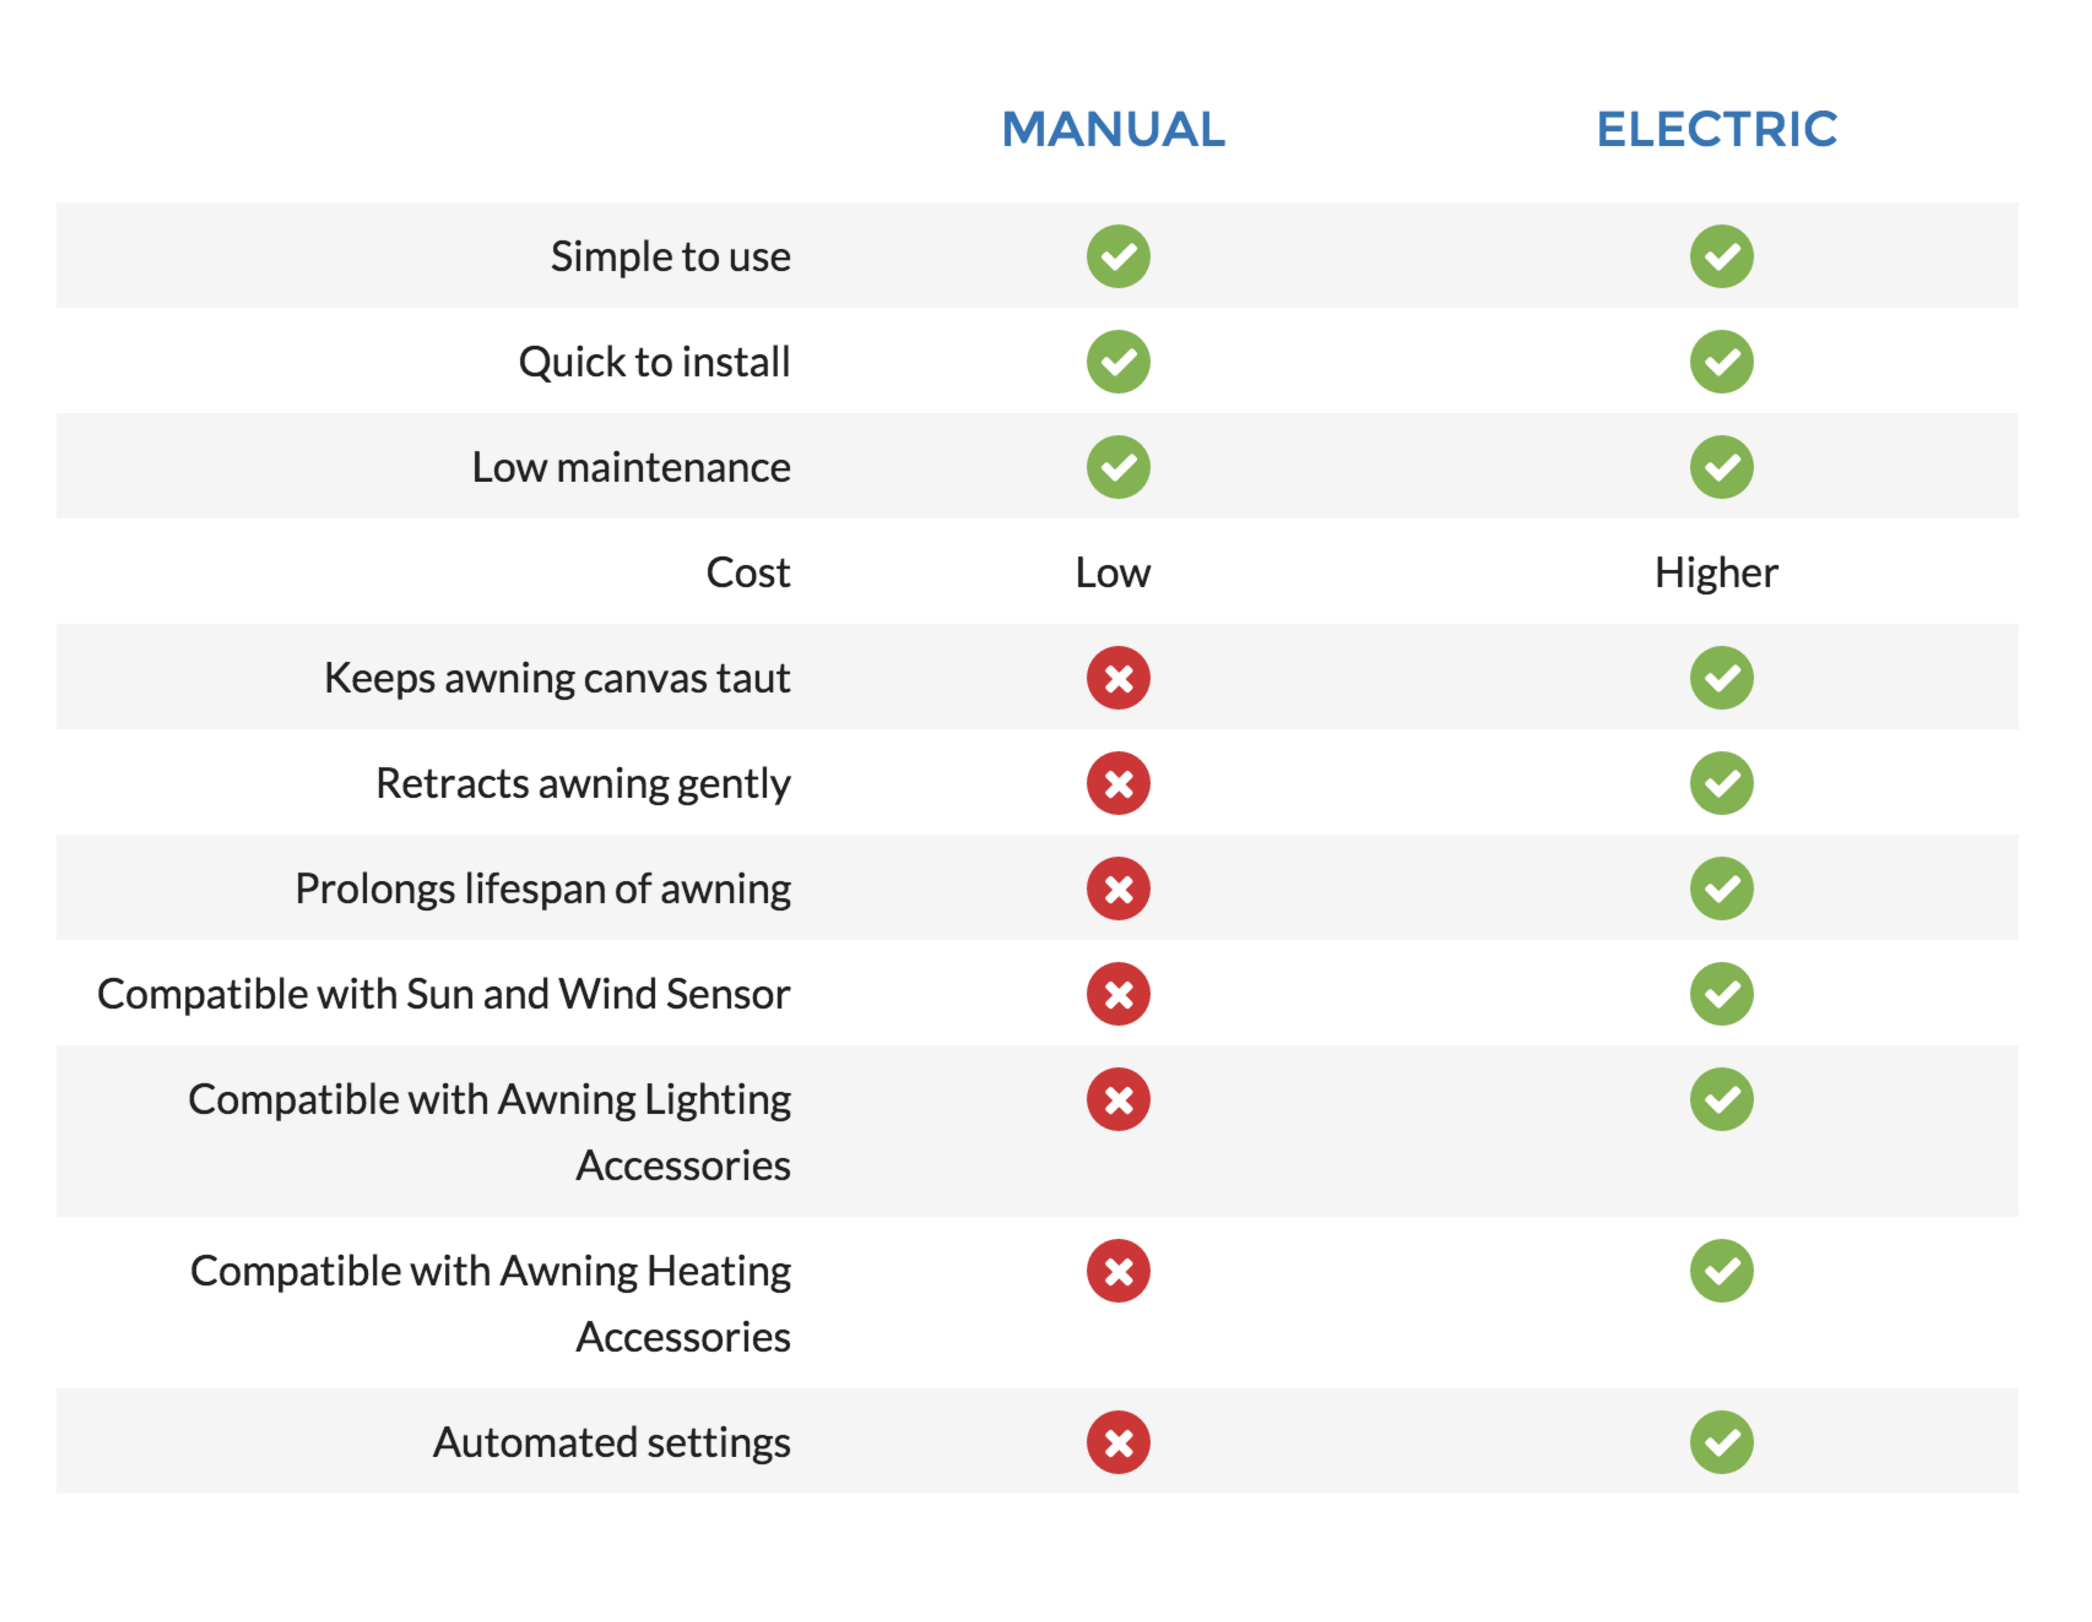 Manual or Electric Awning? Infographic by Awningsouth